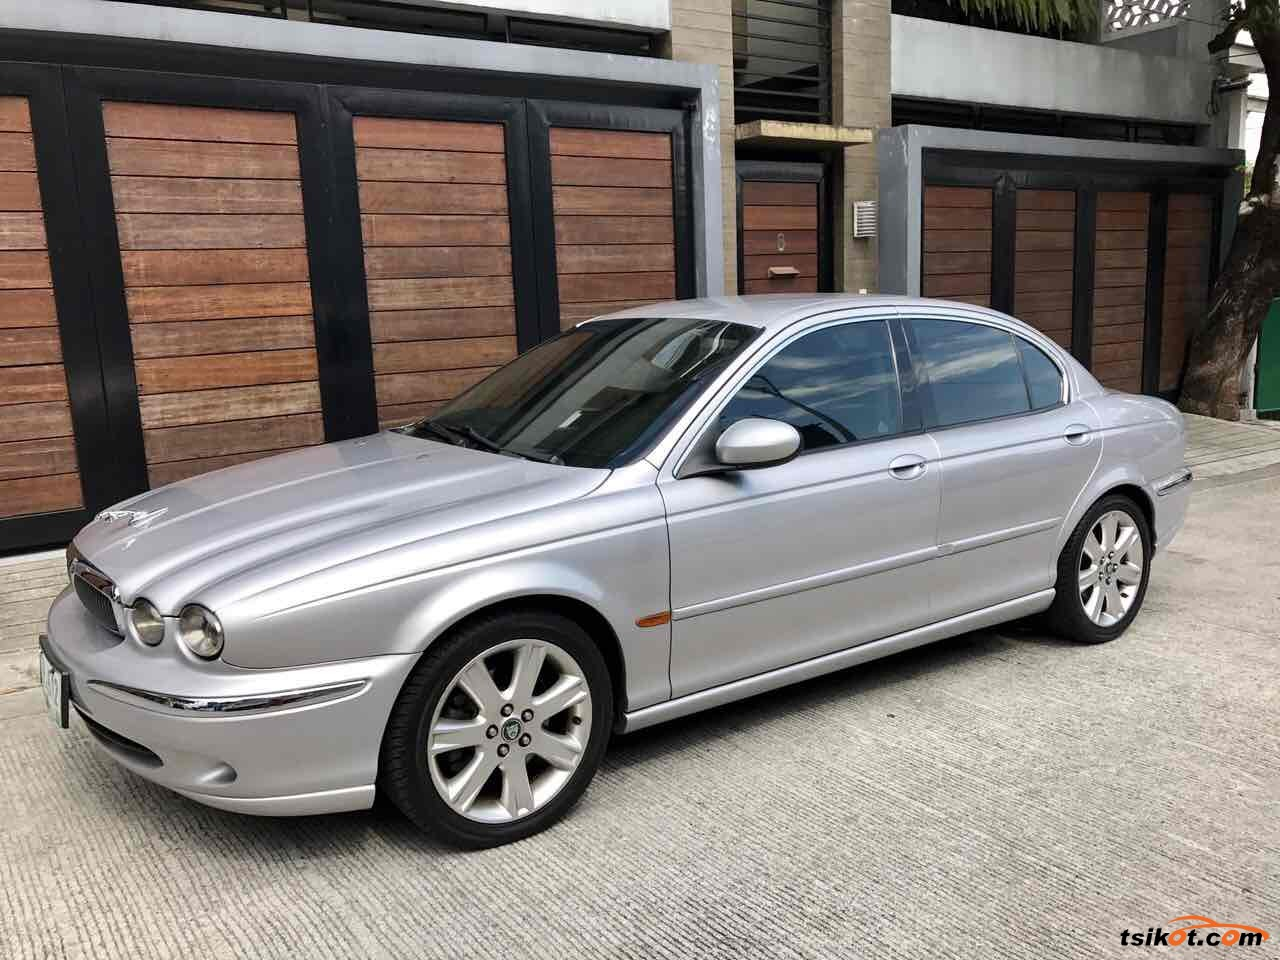 jaguar x type 2003 car for sale metro manila philippines. Black Bedroom Furniture Sets. Home Design Ideas